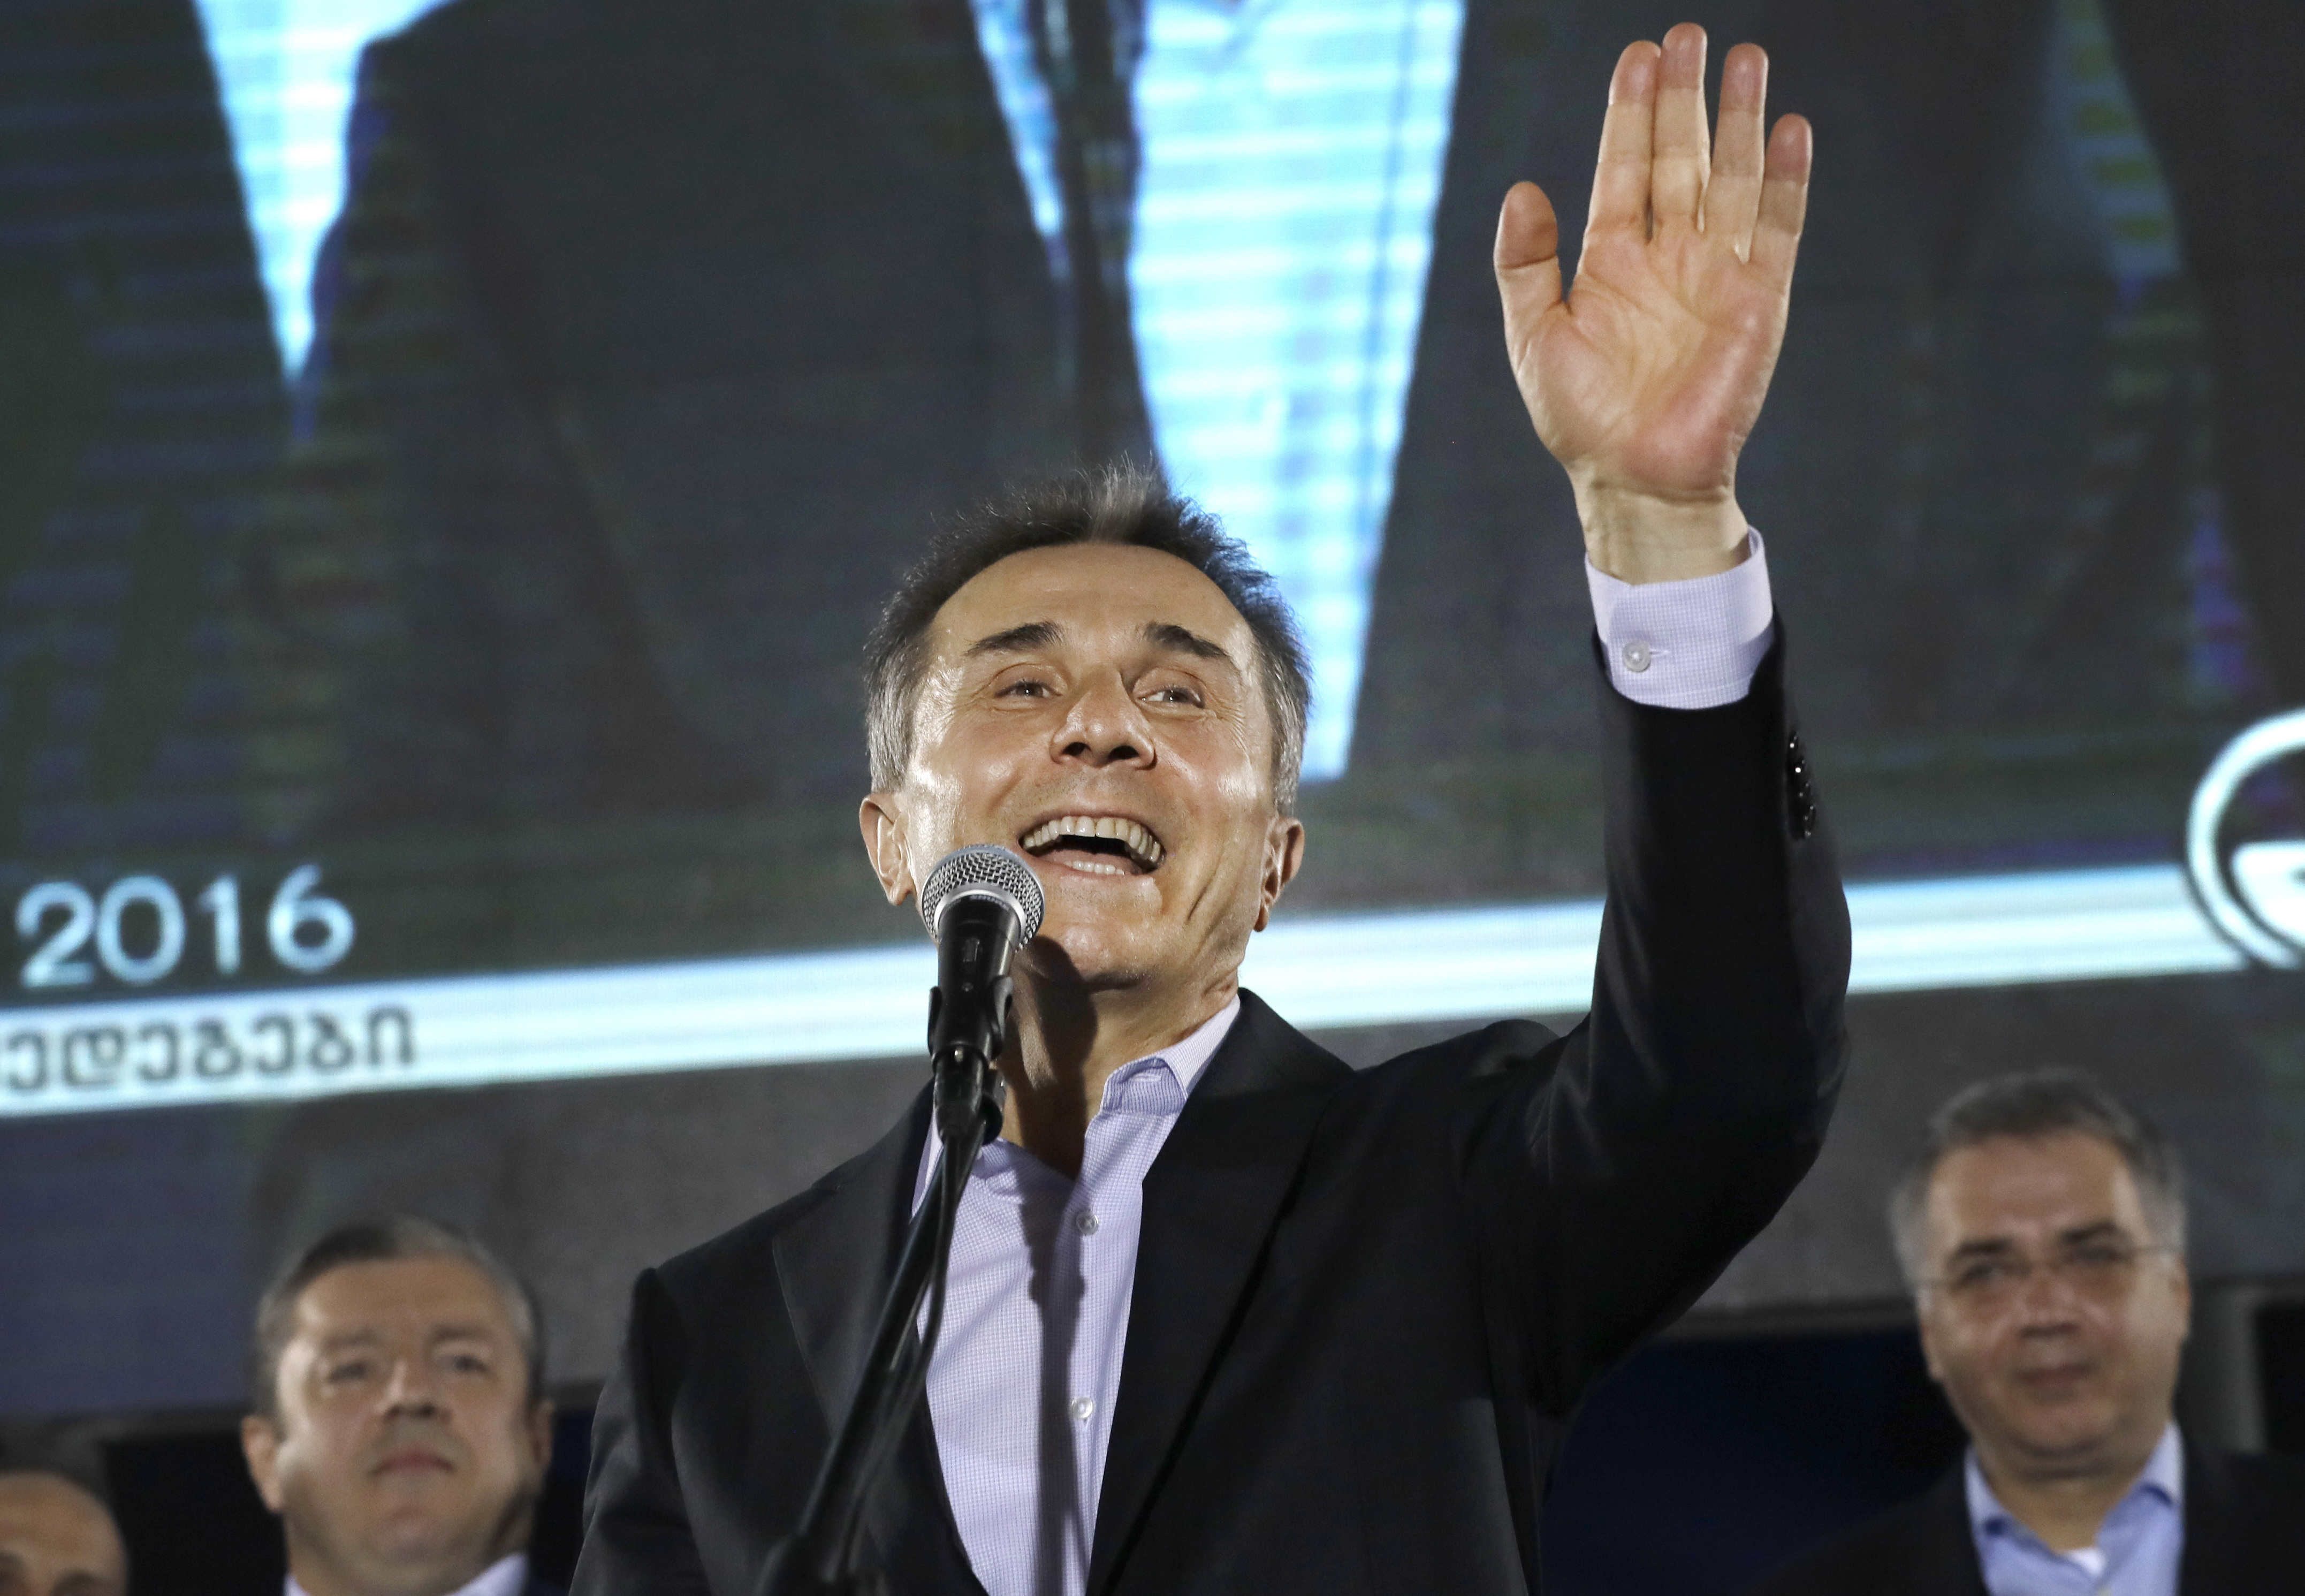 FILE - In this Oct. 8, 2016, photo, Georgian businessman Bidzina Ivanishvili greets supporters during a rally in Tbilisi, Georgia.